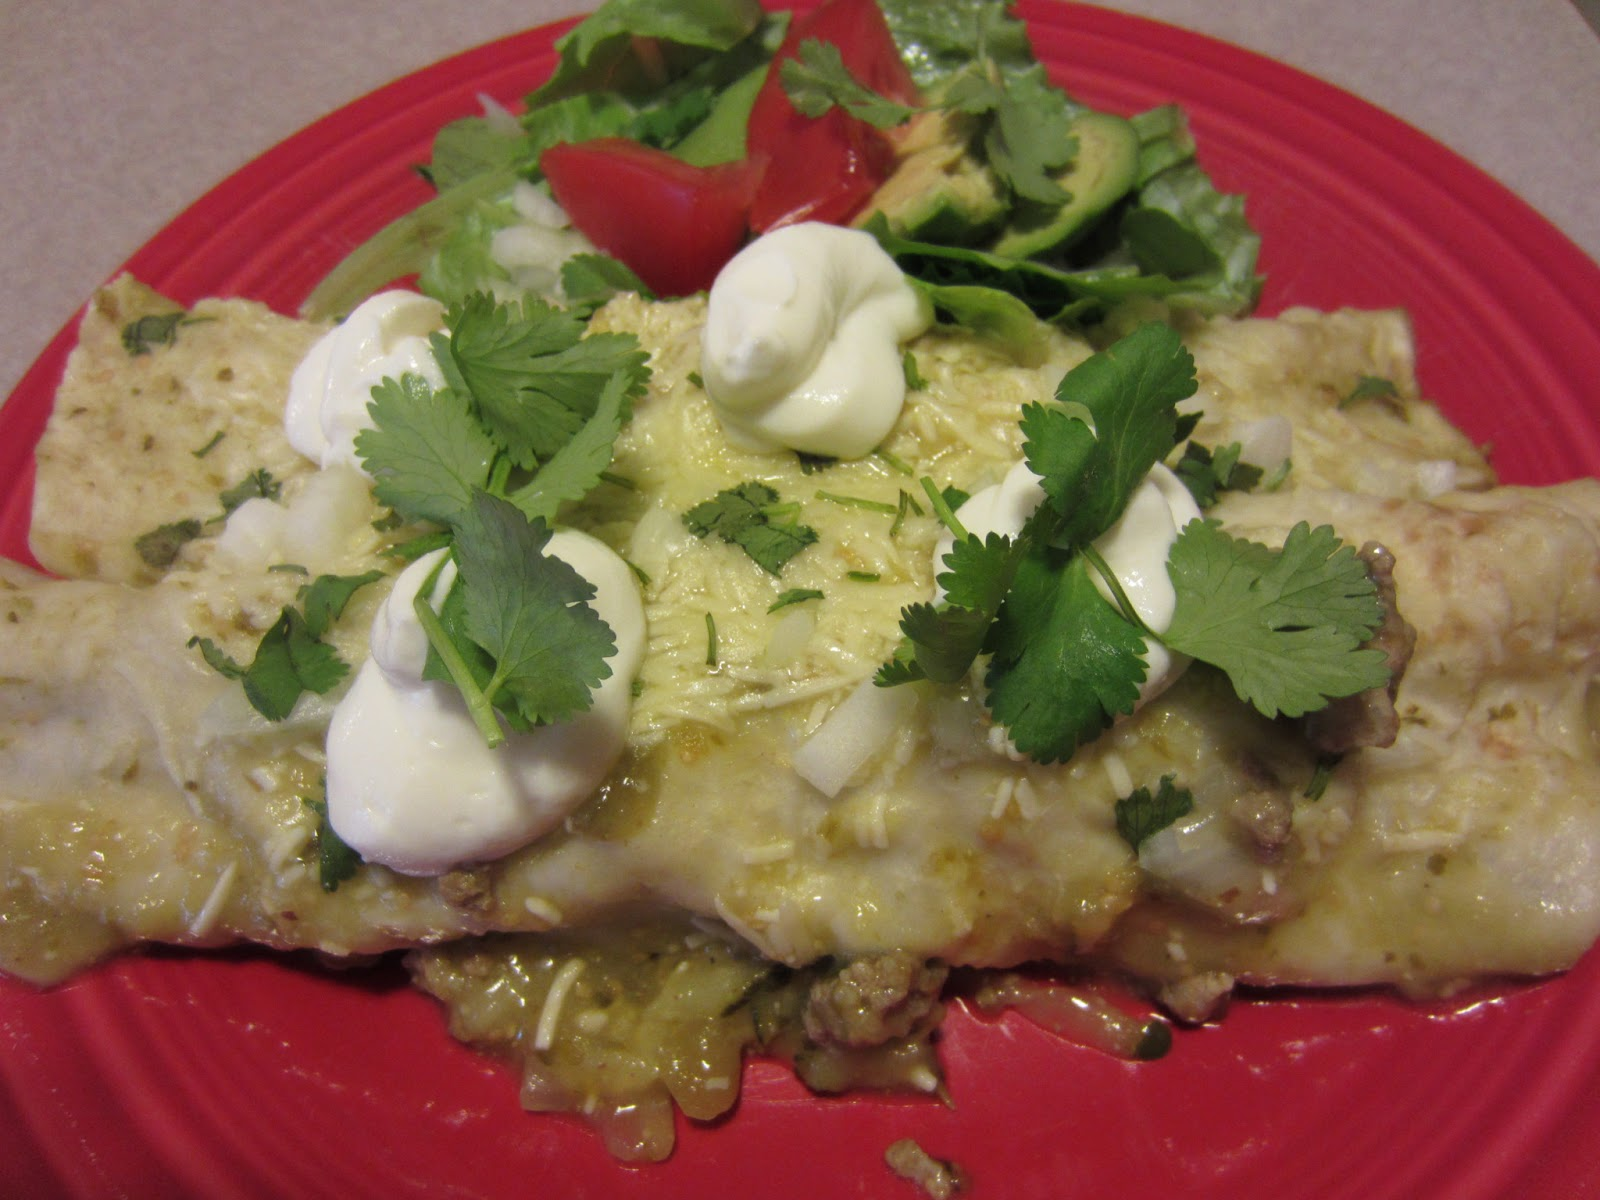 Turkey and Zucchini Enchiladas with Tomatillo Verde Sauce